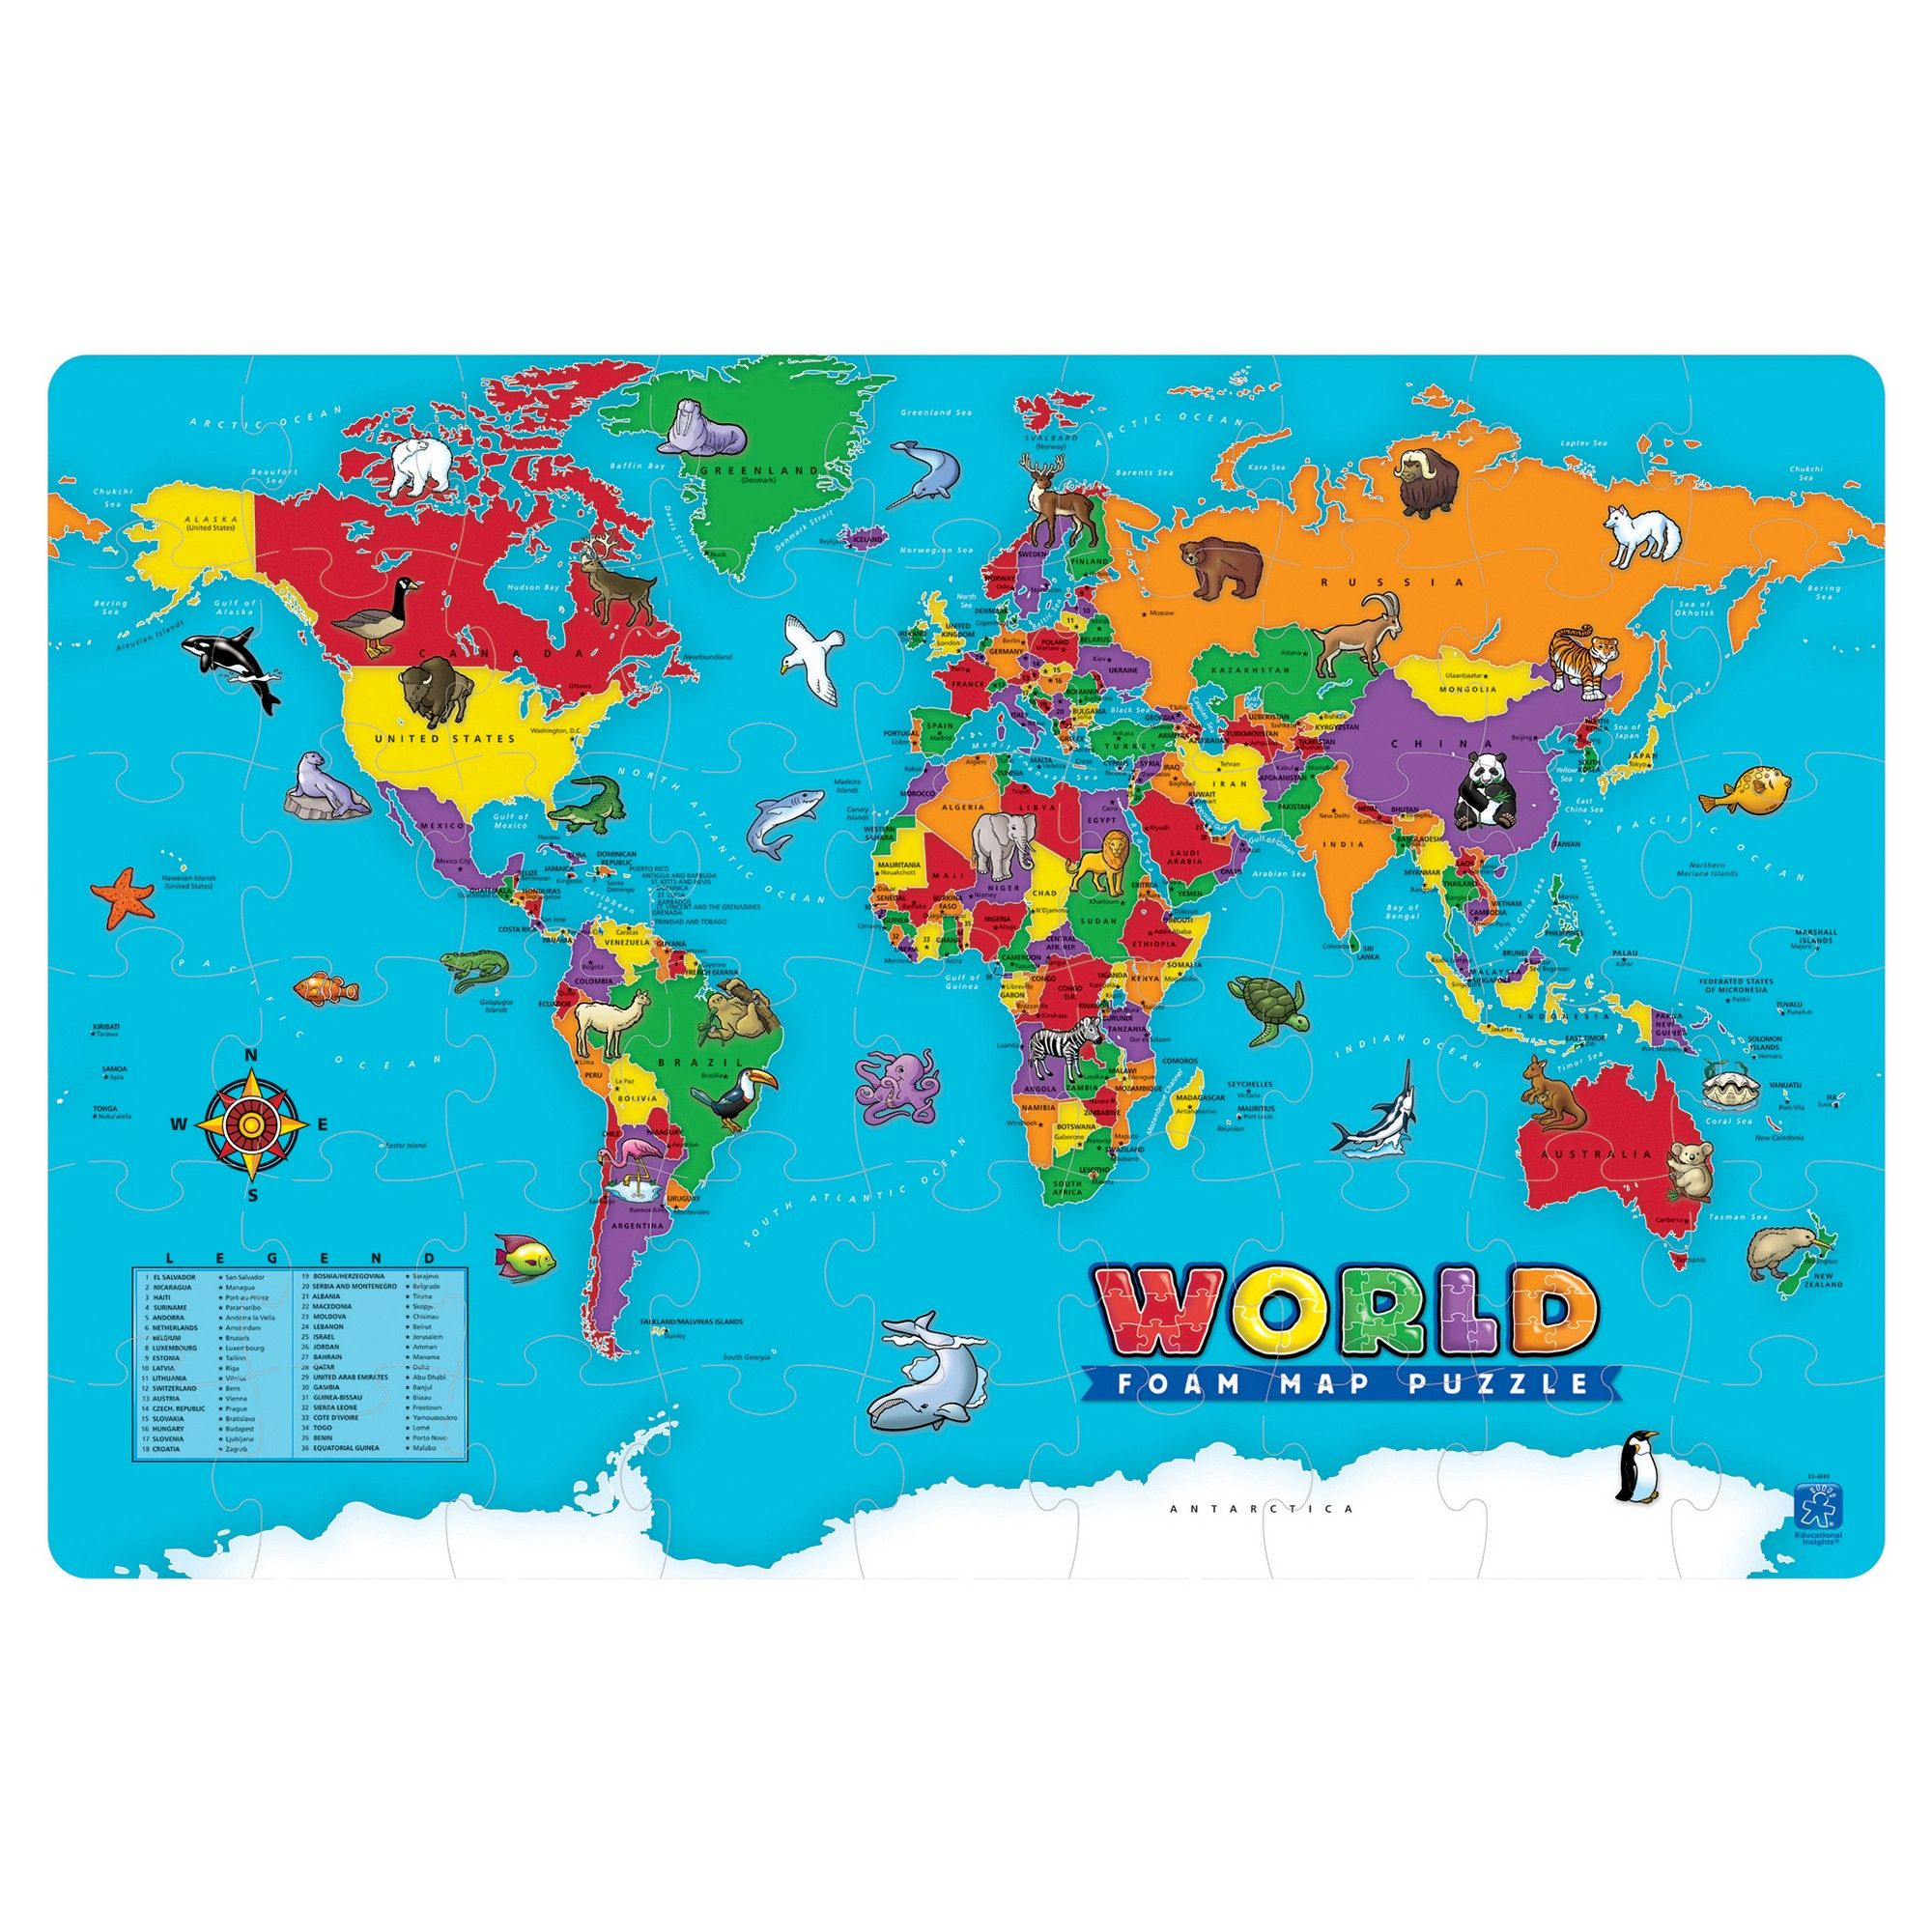 54pc world foam puzzle jigsaw puzzles products 54pc world foam puzzle jigsaw puzzles gumiabroncs Image collections